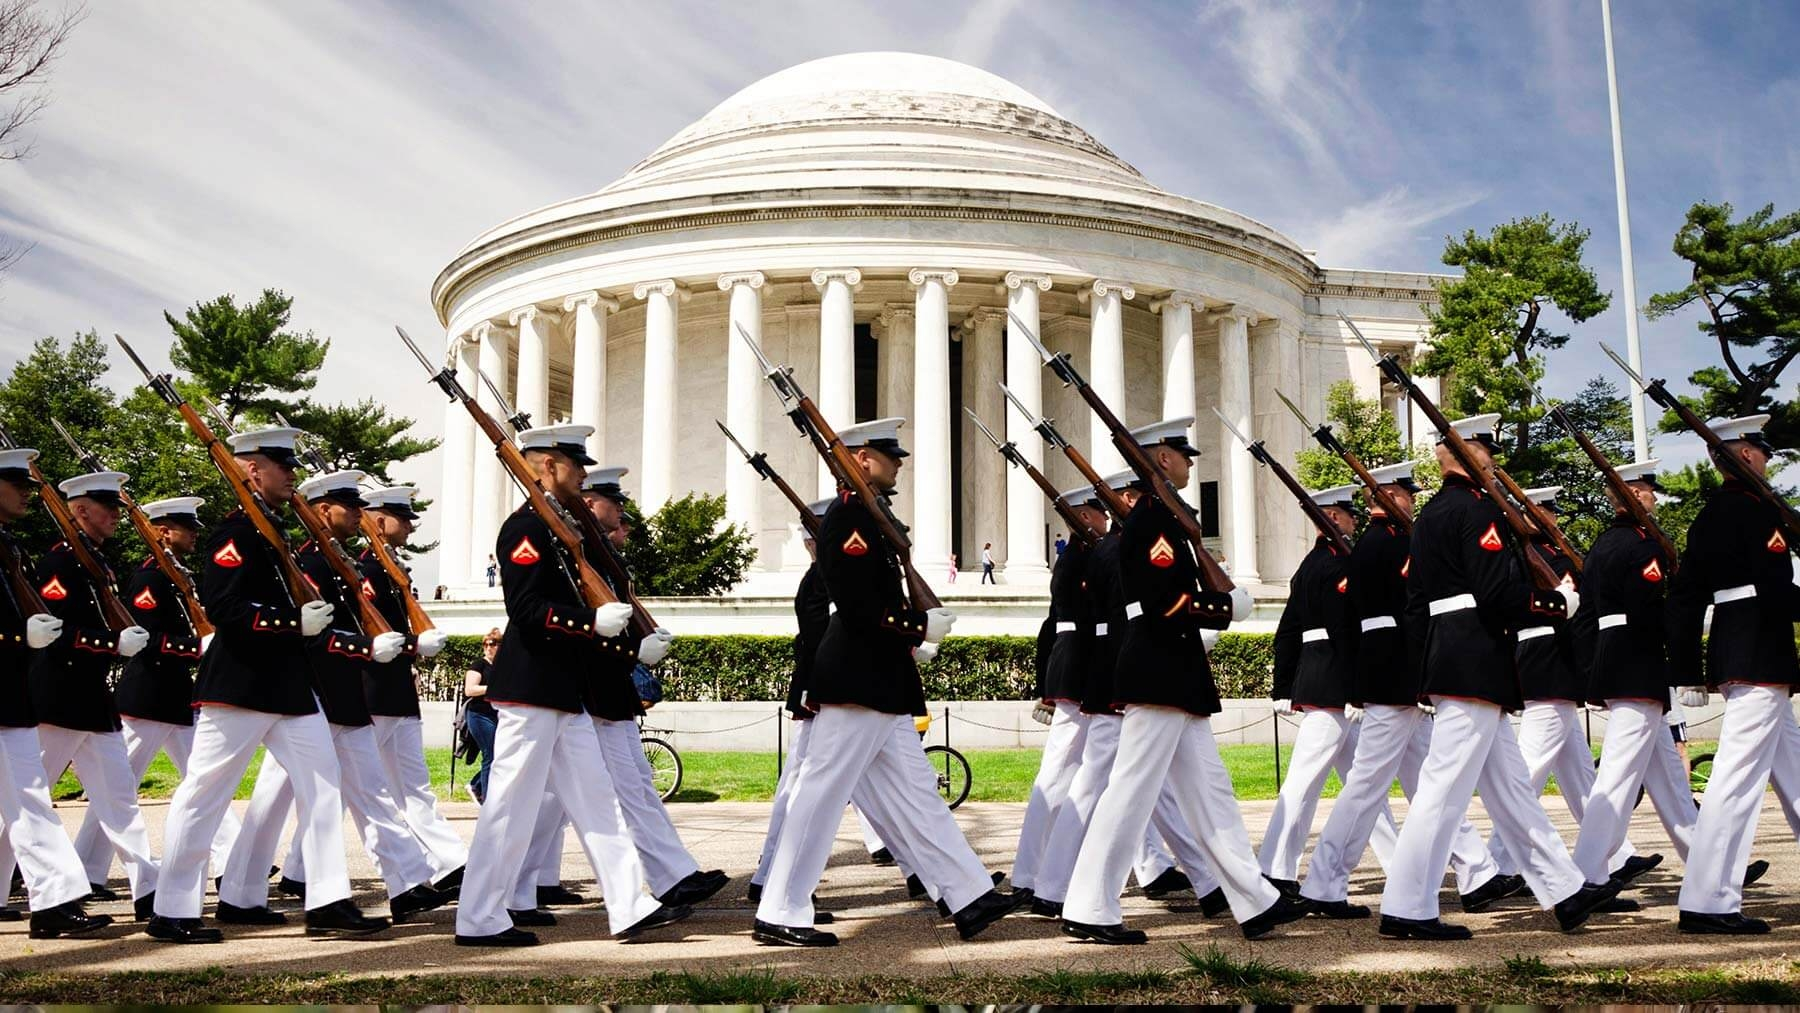 Marines with rifles and bayonets march in Washington, D.C.